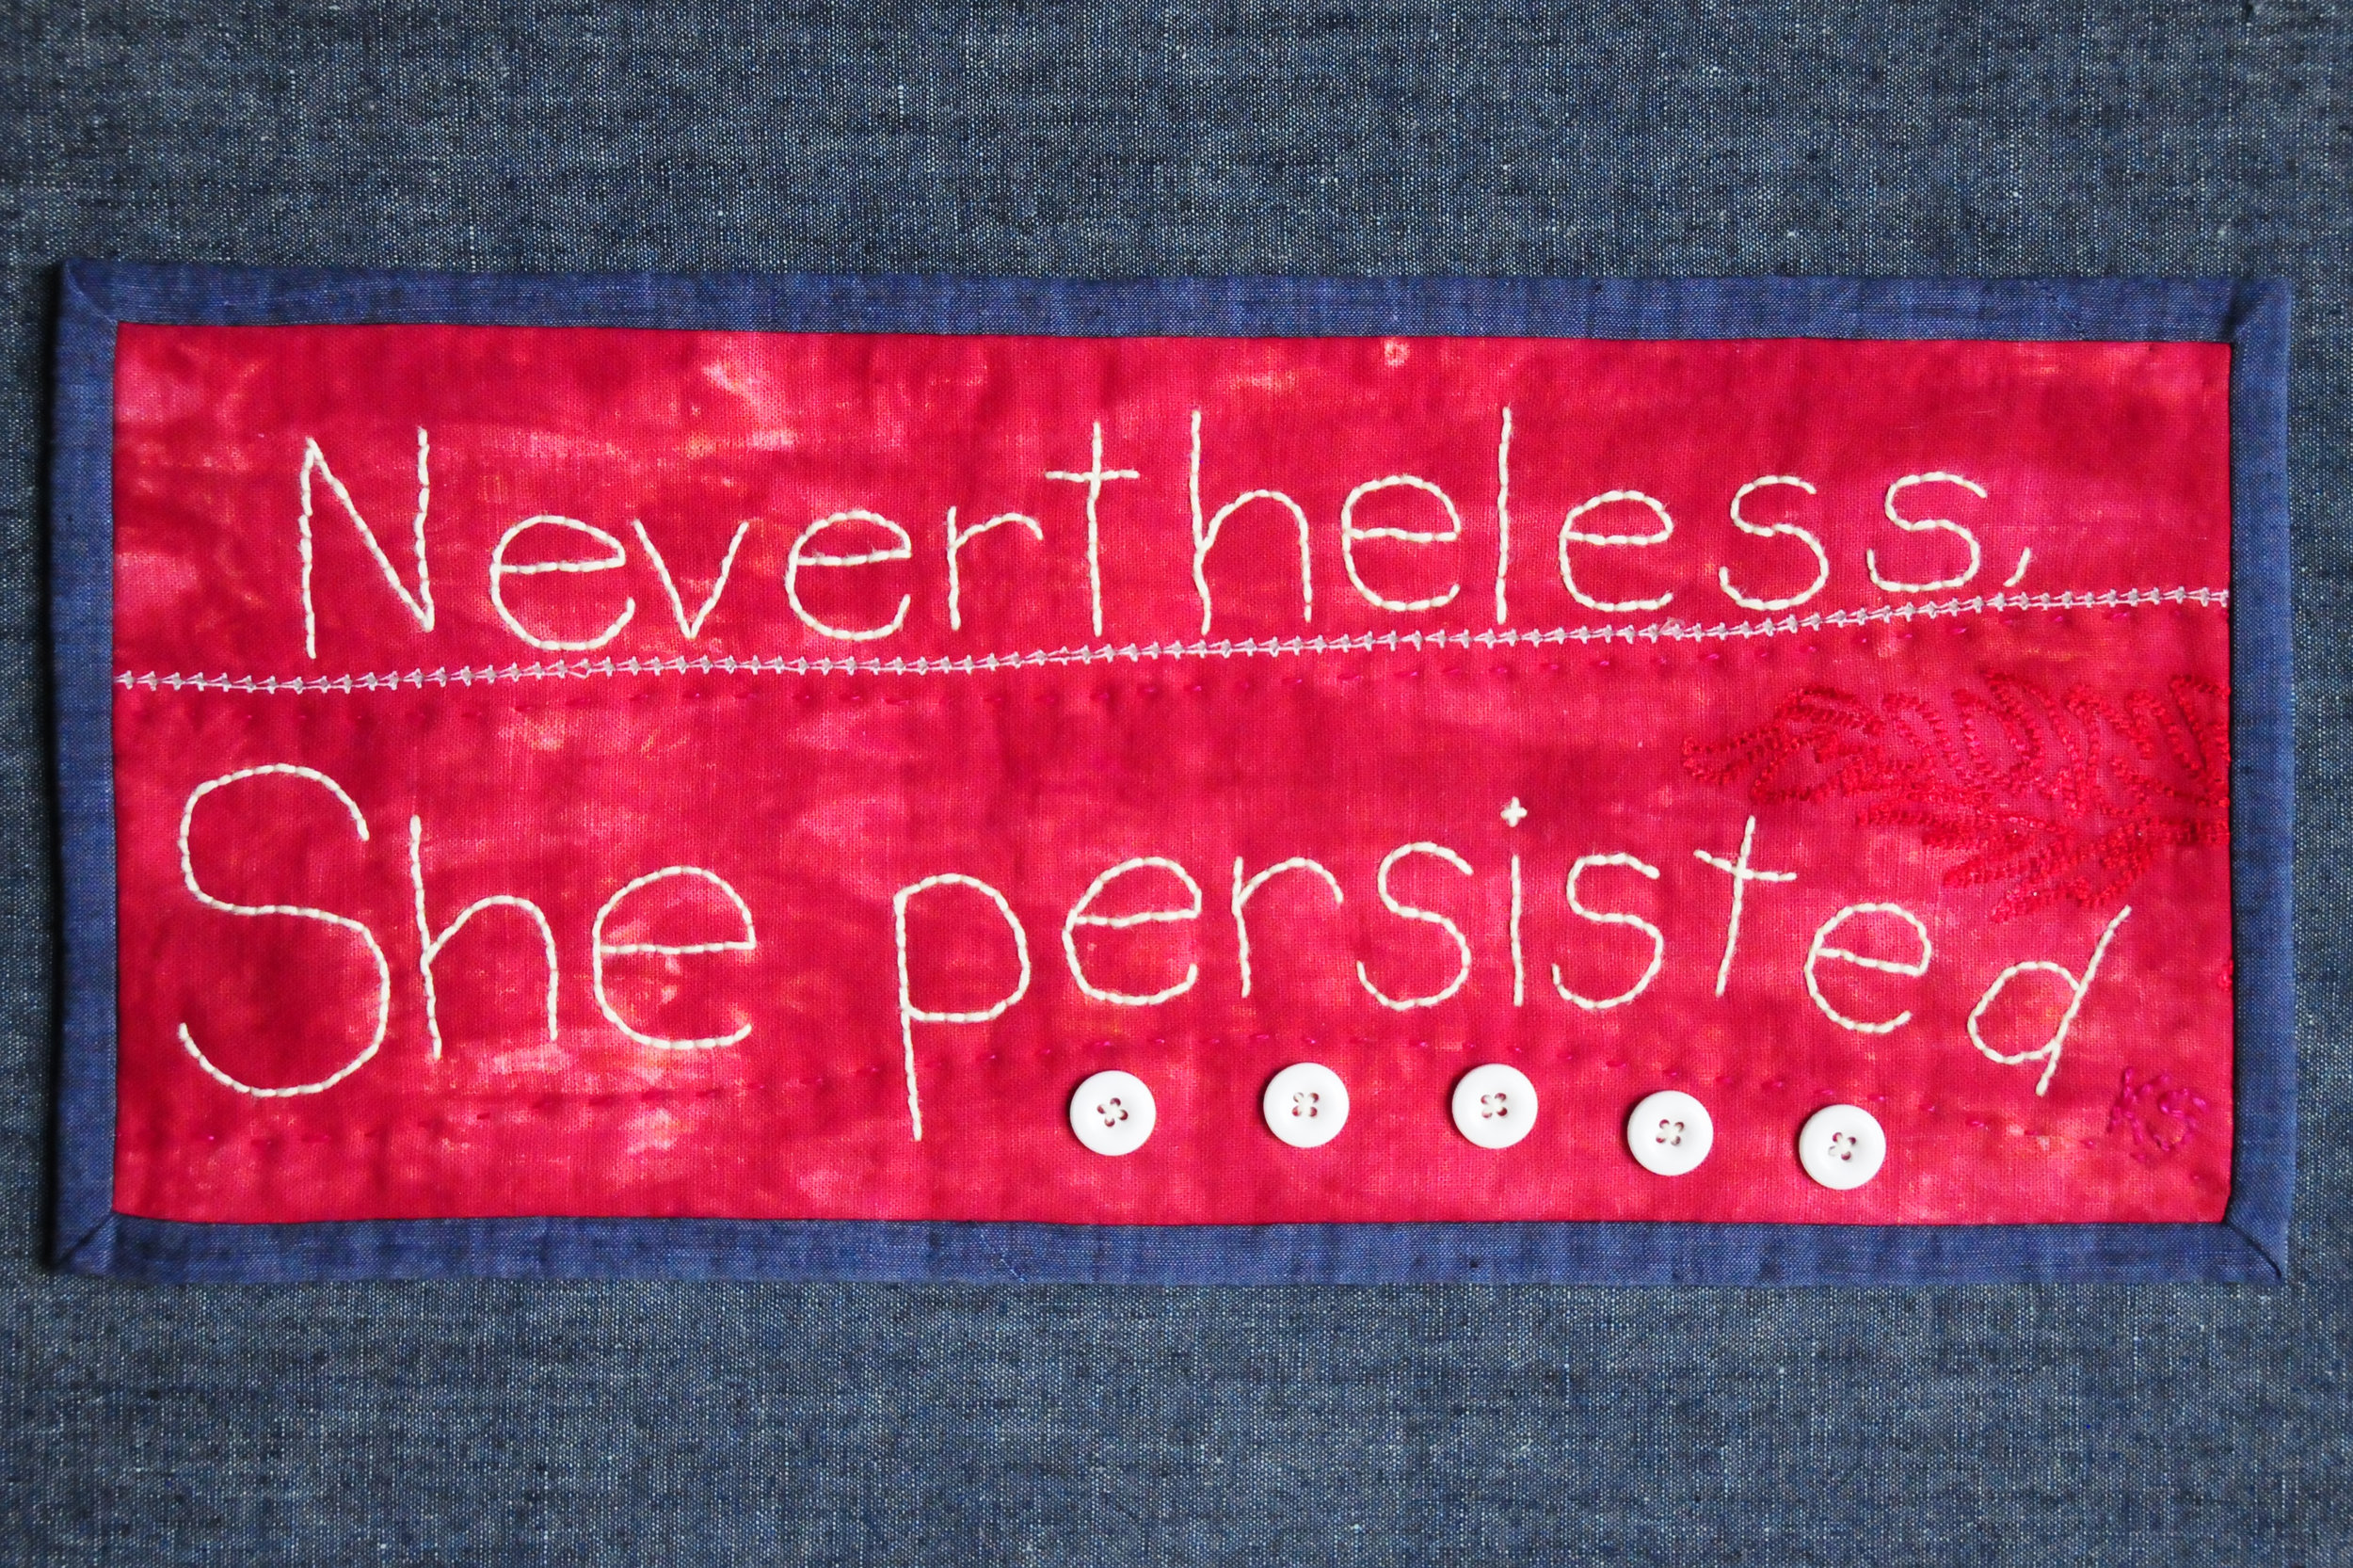 Nevertheless, She persisted, 13x6